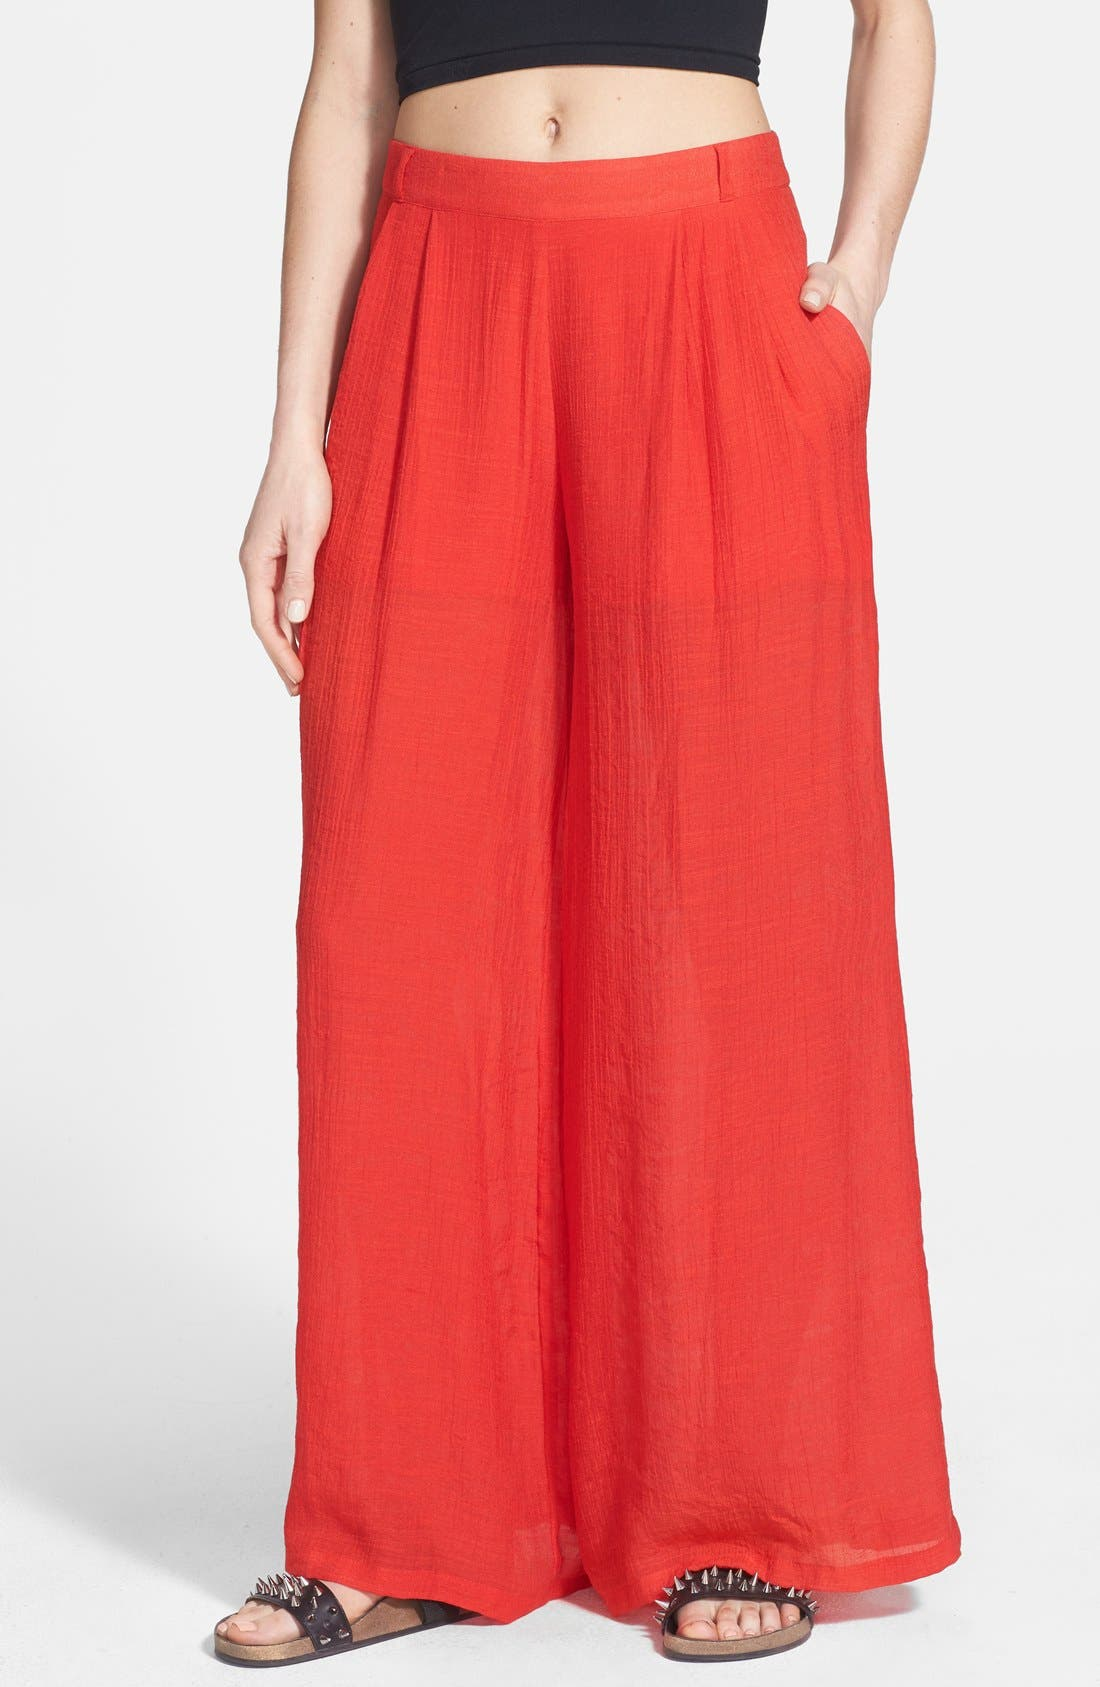 Alternate Image 1 Selected - Rules of Etiquette Palazzo Pants